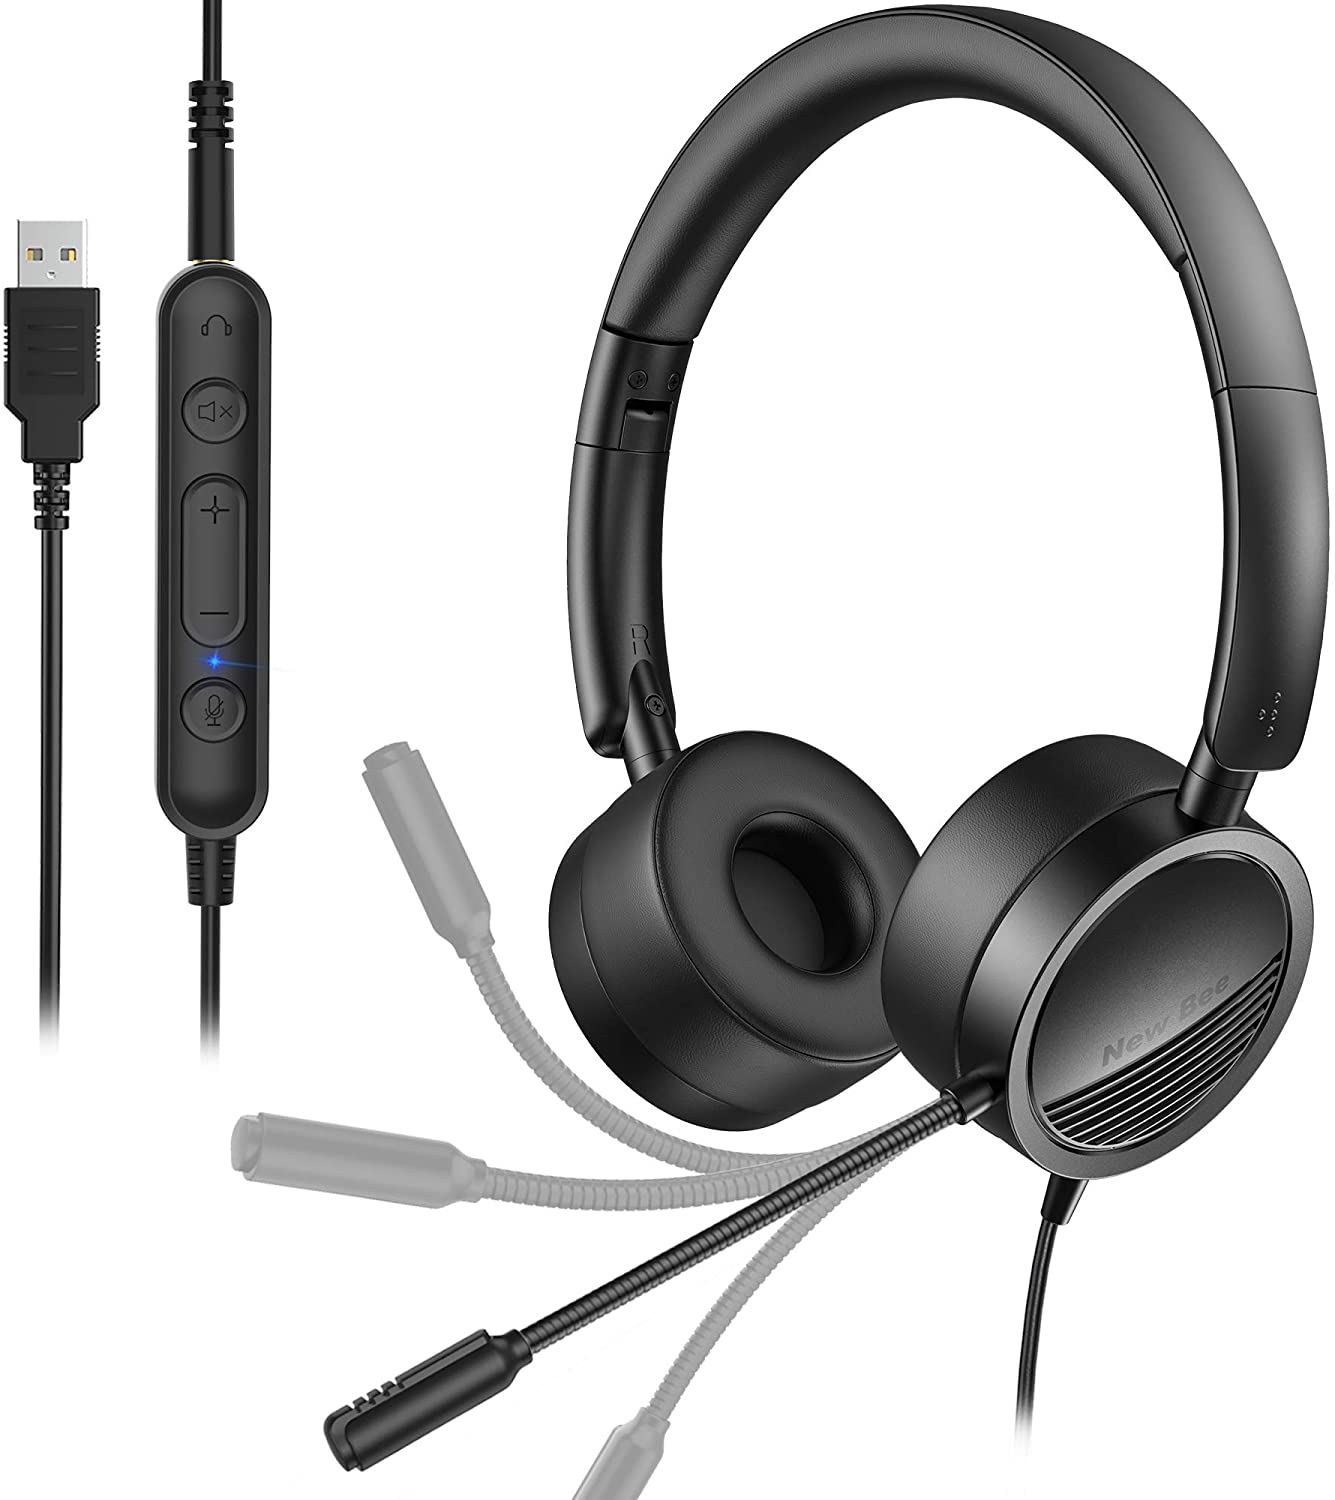 USB Headset New bee Office Computer Headset with Noise Cancelling Mic & in-Line Call Controls On-Ear 3.5mm Jack Call Center Headset for Skype, Zoom, Webinar, Cell Phone, PC, Tablet, Classroom, Home